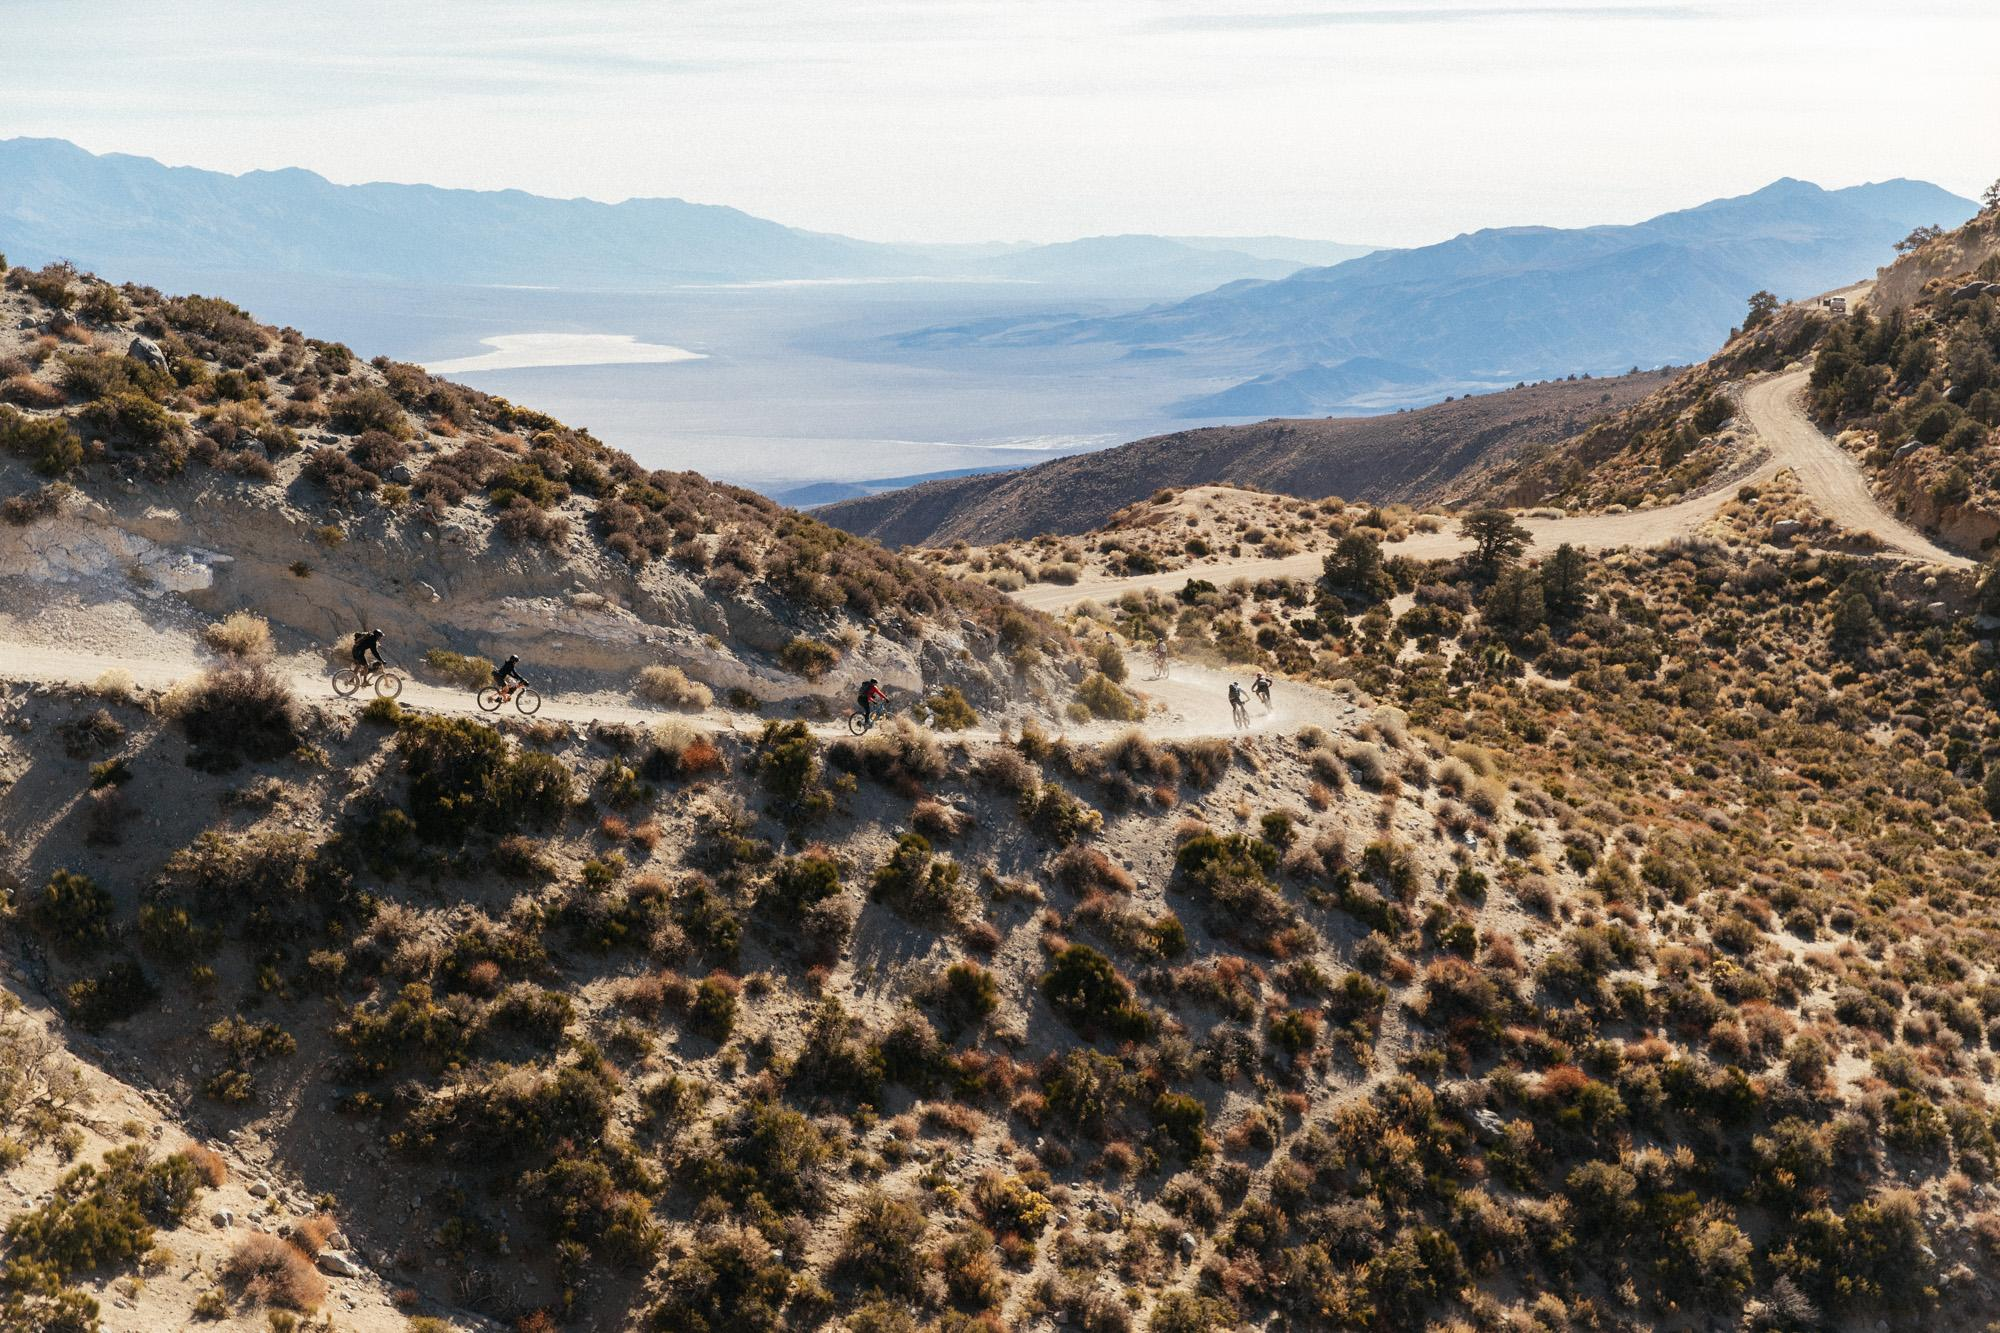 Panamint Valley in the background, stoked riders in the foreground.